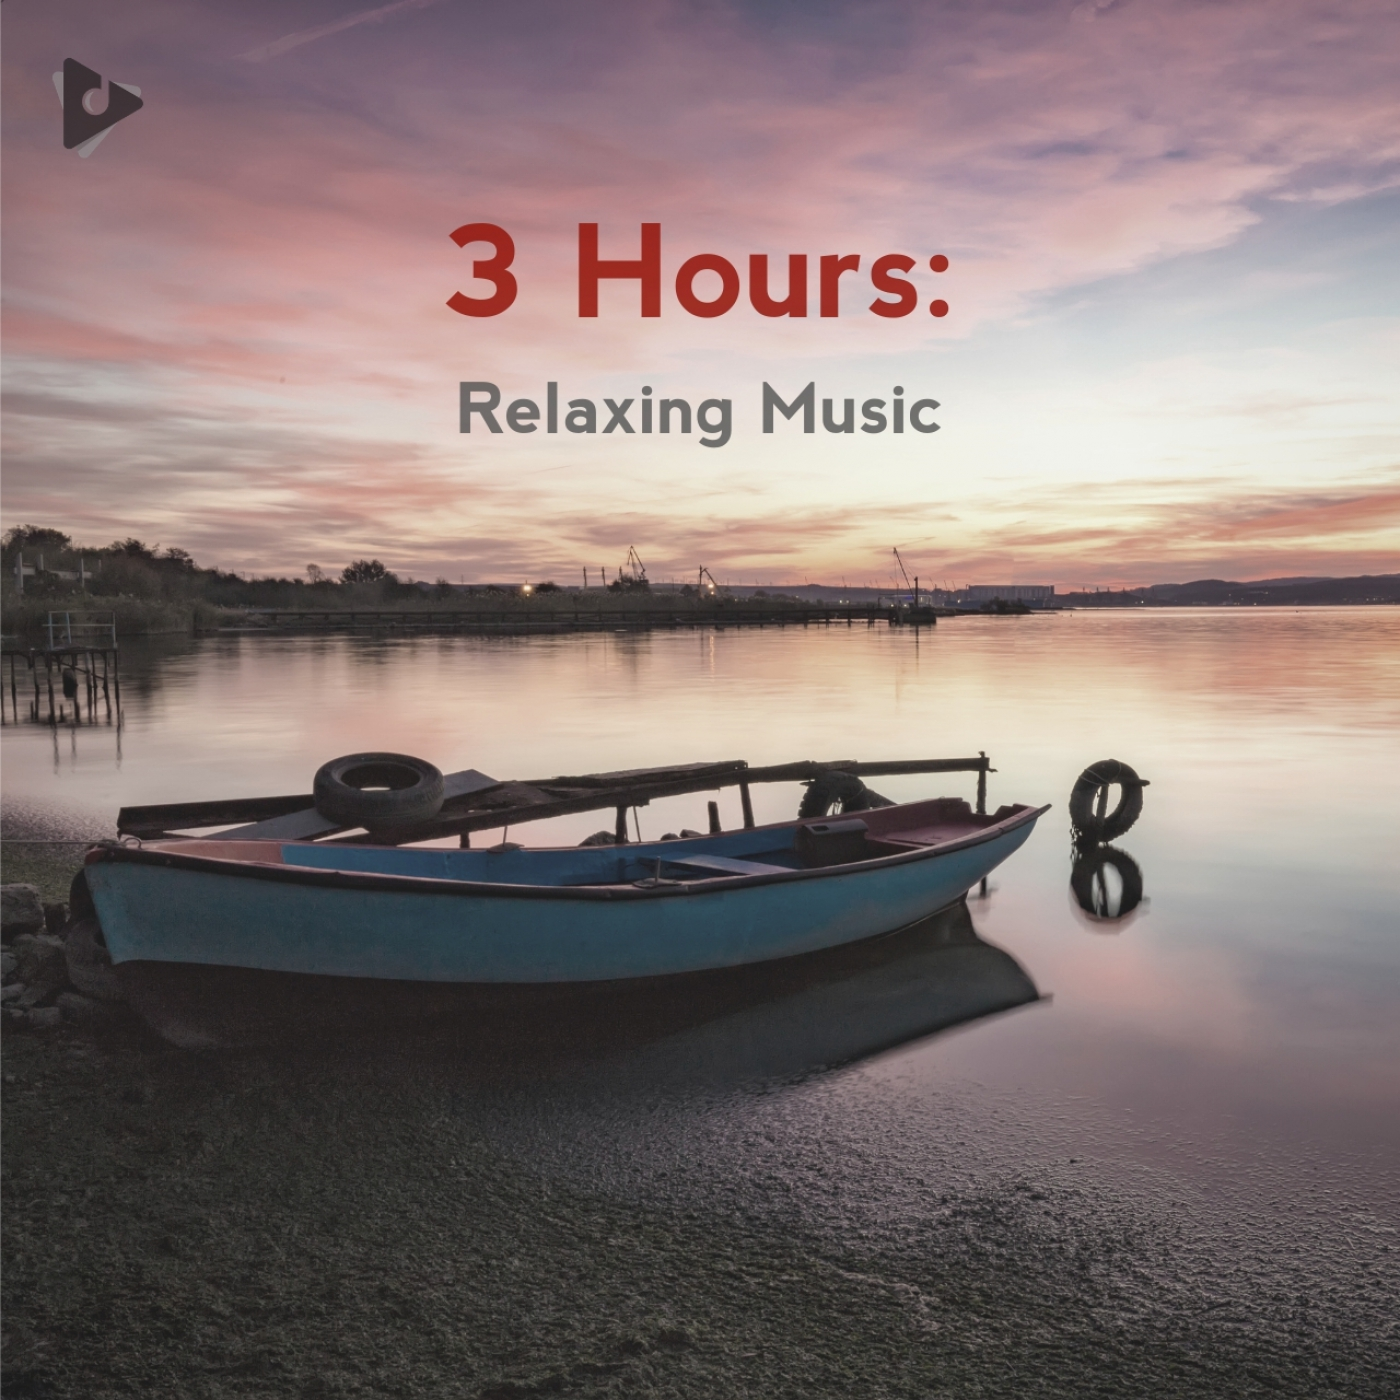 3 Hours: Relaxing Music